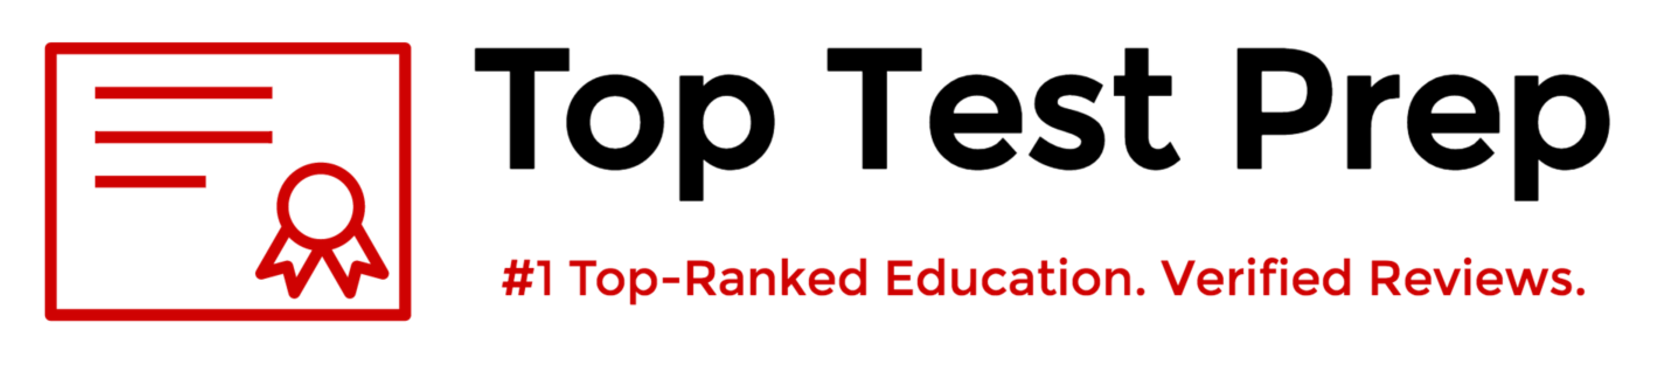 Review of Top Test Prep